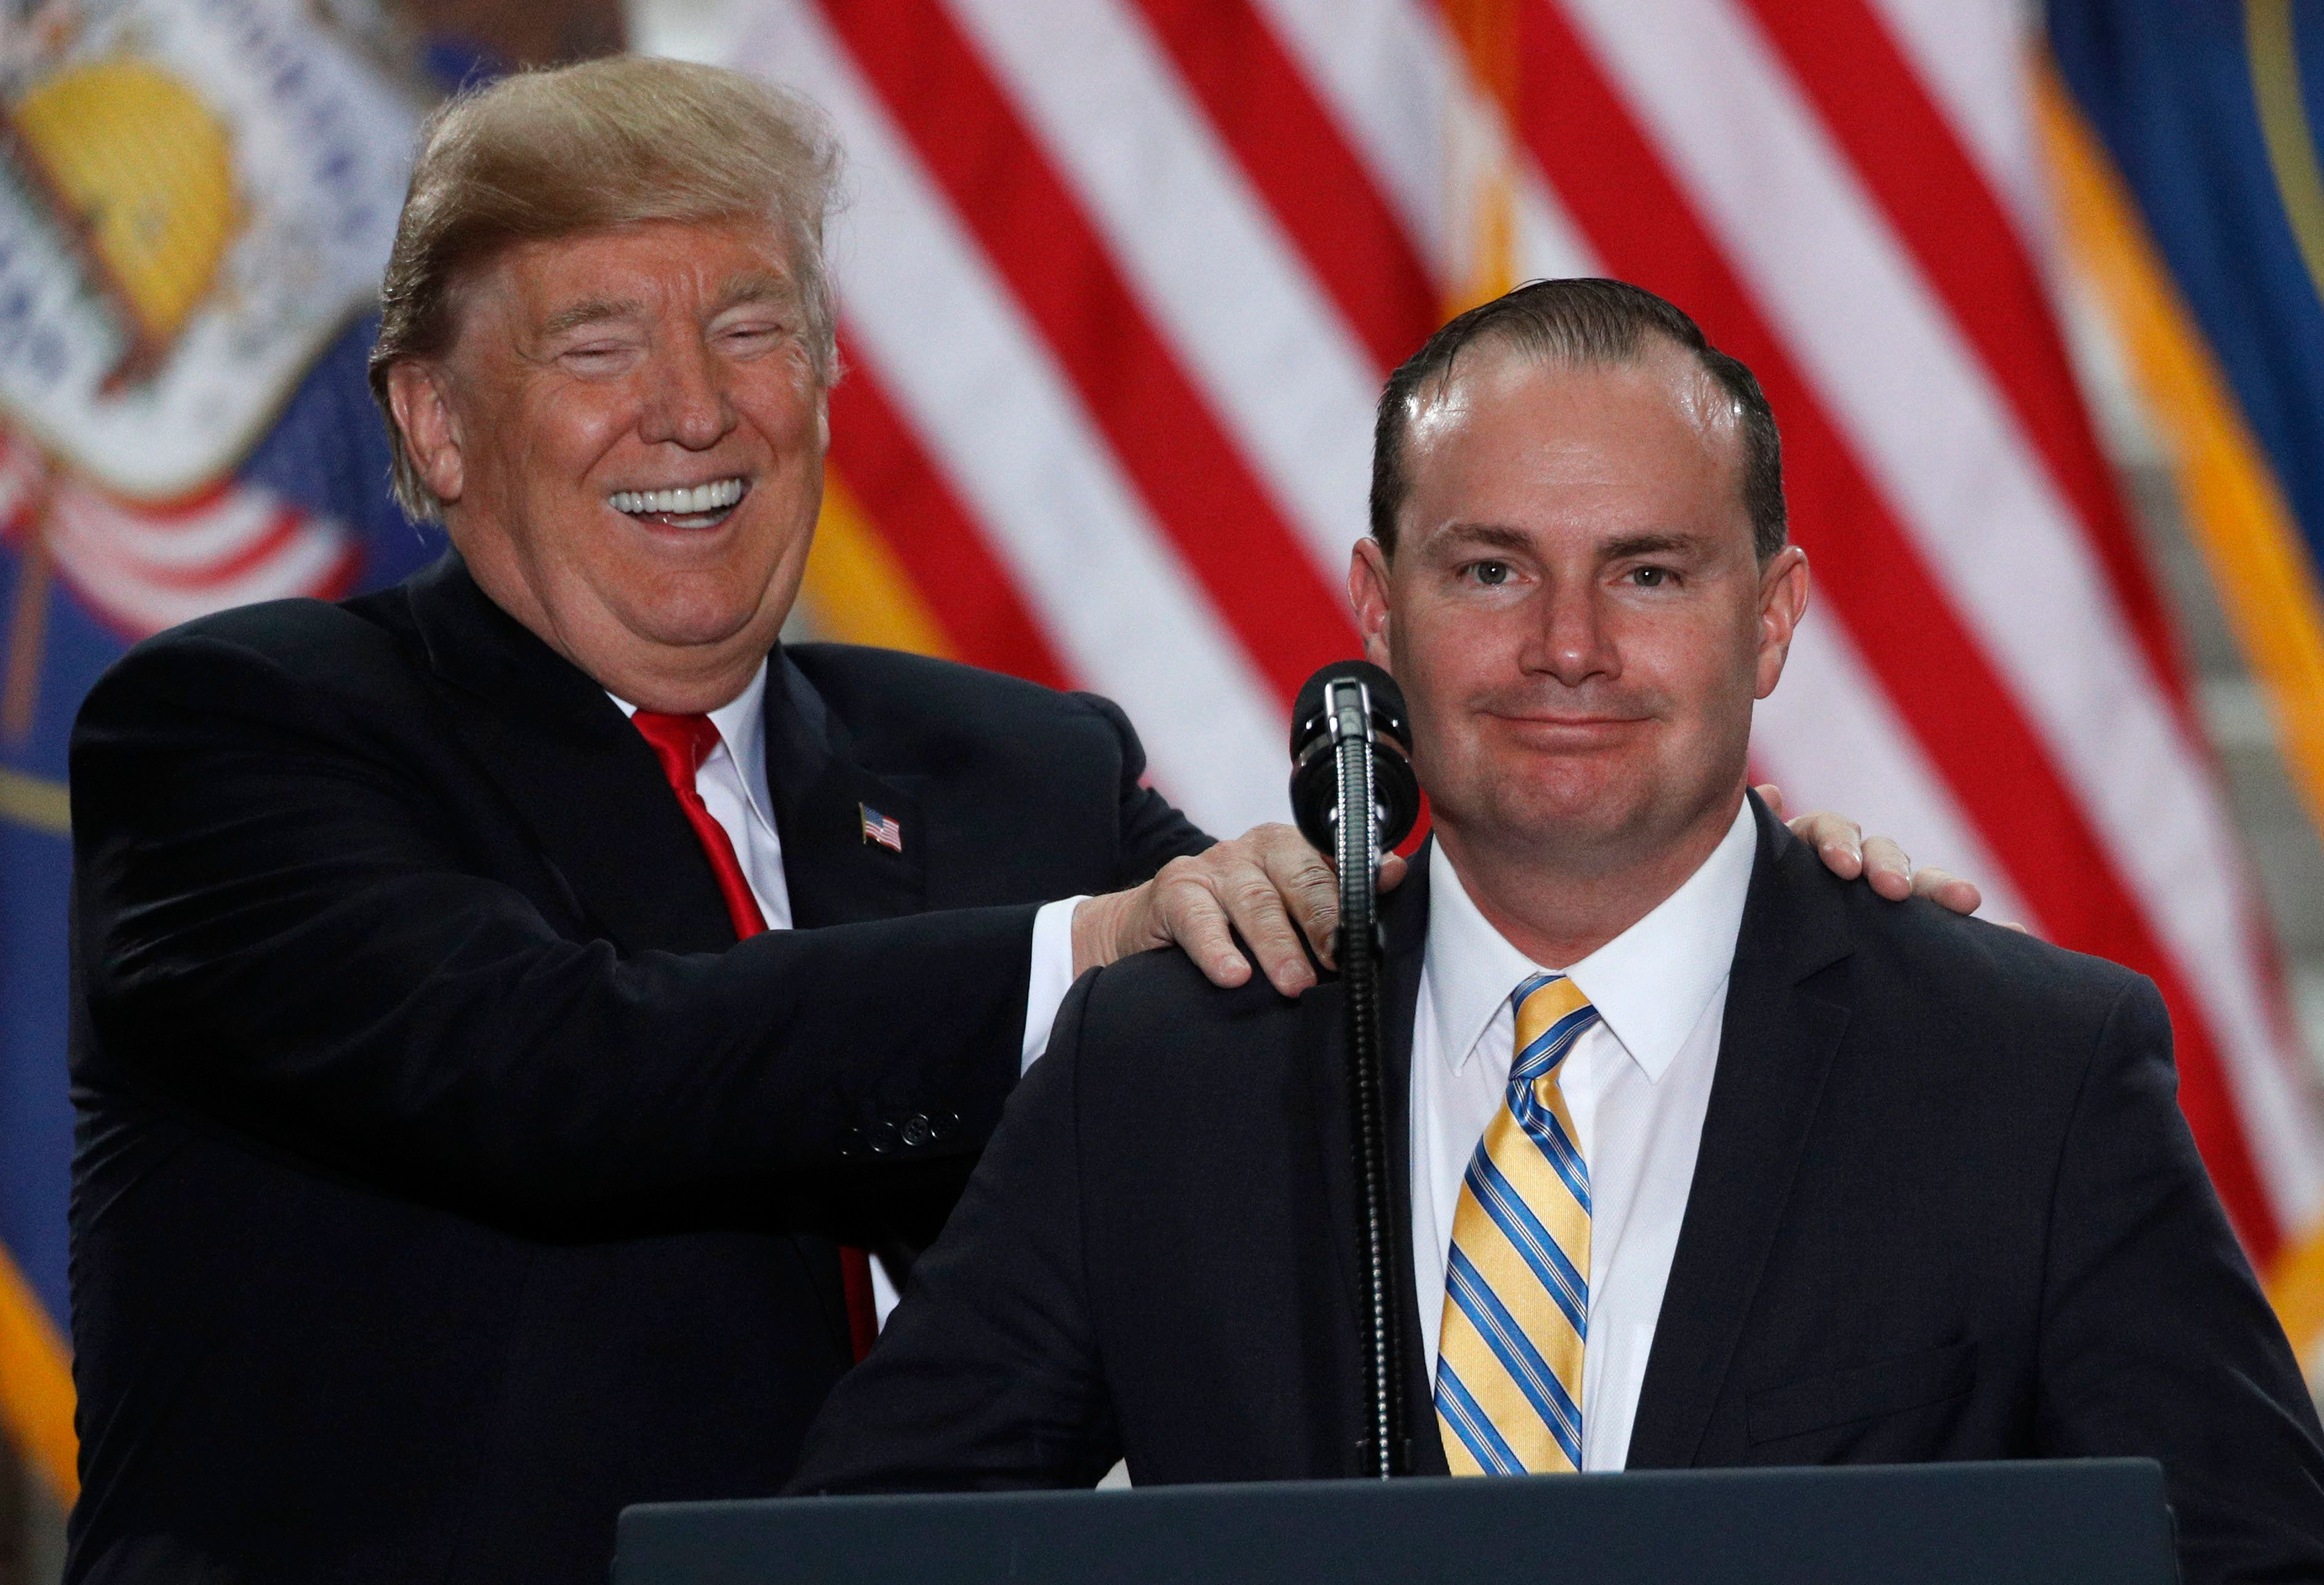 SALT LAKE CITY, UT - DECEMBER 4: U.S. President Donald Trump jokes with Senator Mike Lee (R-UT) as he speaks at the Rotunda of the Utah State Capitol on December 4, 2017 in Salt Lake City, Utah. Trump announced the reduction in size of the Bears Ears and Grand Staircase-Escalante National Monuments which were created by Presidents Obama and Clinton.  (Photo by George Frey/Getty Images)